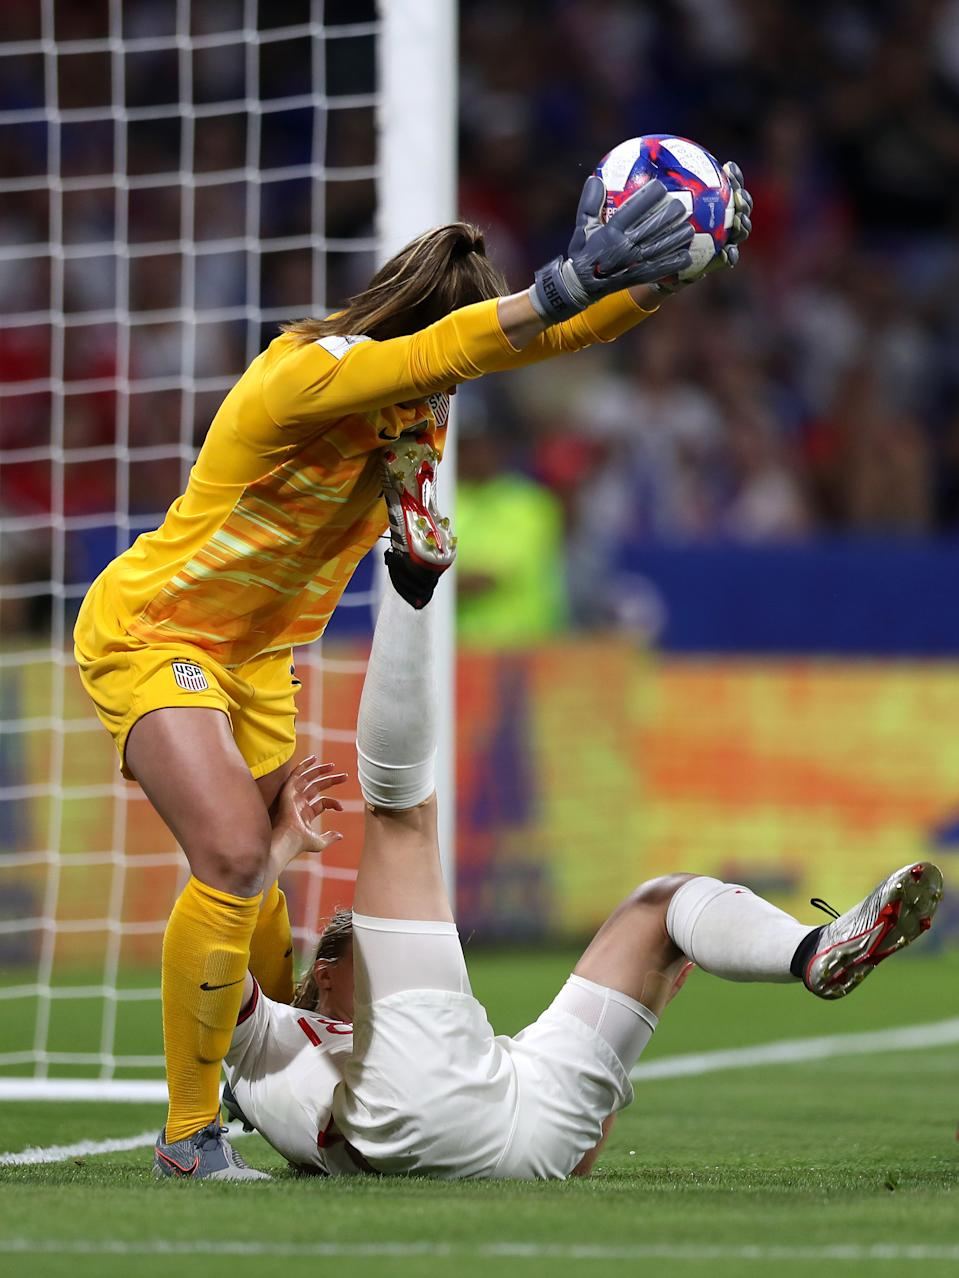 Alyssa Naeher of the USA catches the ball under pressure from Ellen White of England during the 2019 FIFA Women's World Cup France Semi Final match between England and USA at Stade de Lyon on July 02, 2019 in Lyon, France. (Photo by Naomi Baker - FIFA/FIFA via Getty Images)